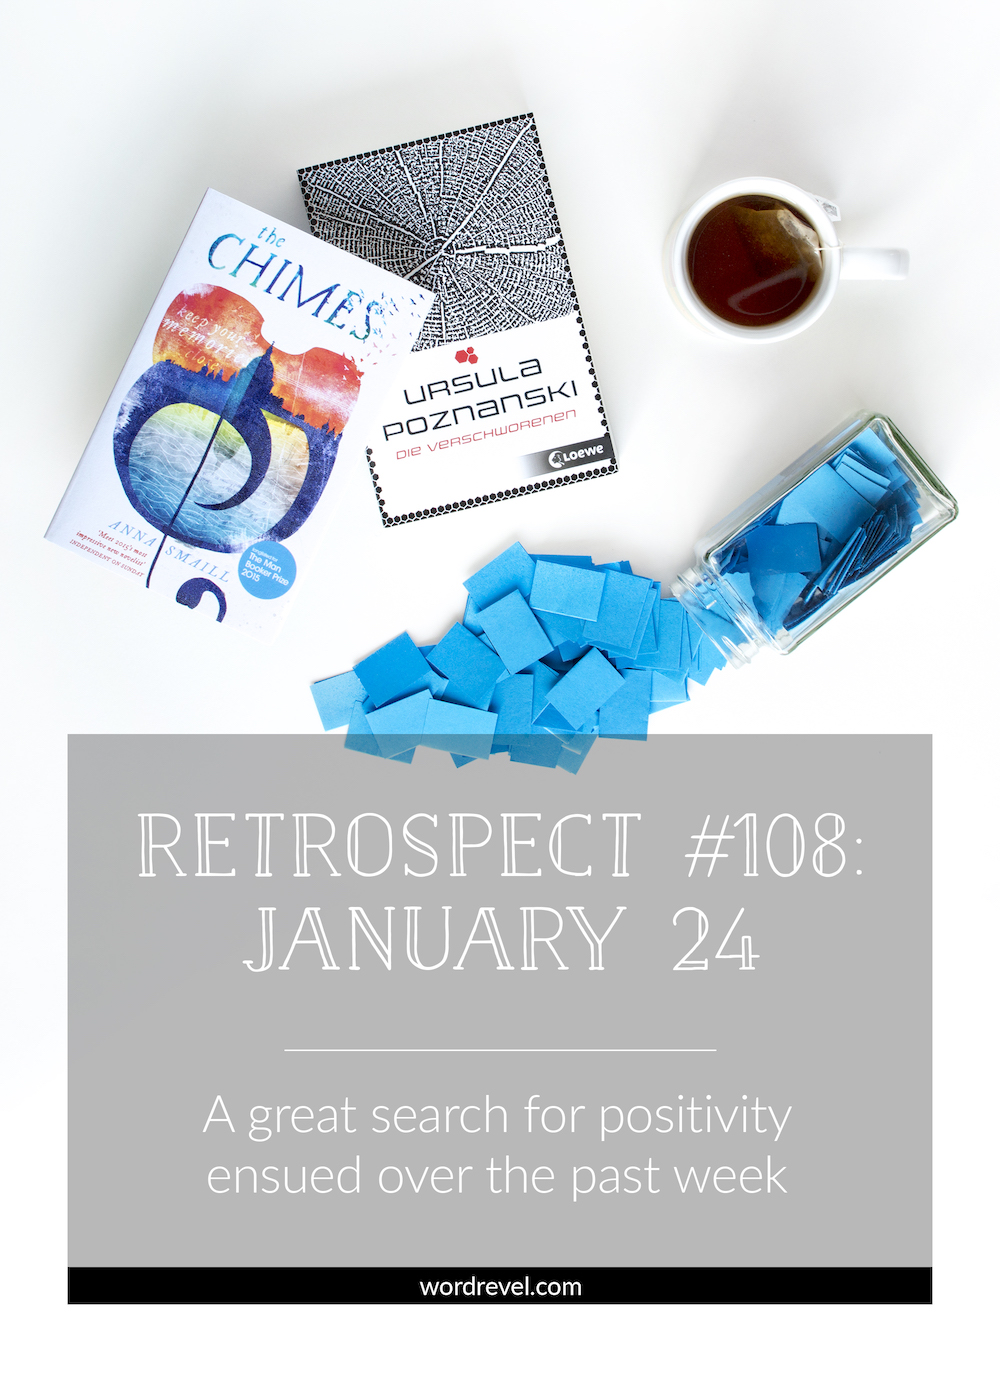 Retrospect 108 (Jan 24, 2016): A great search for positivity ensued over the past week